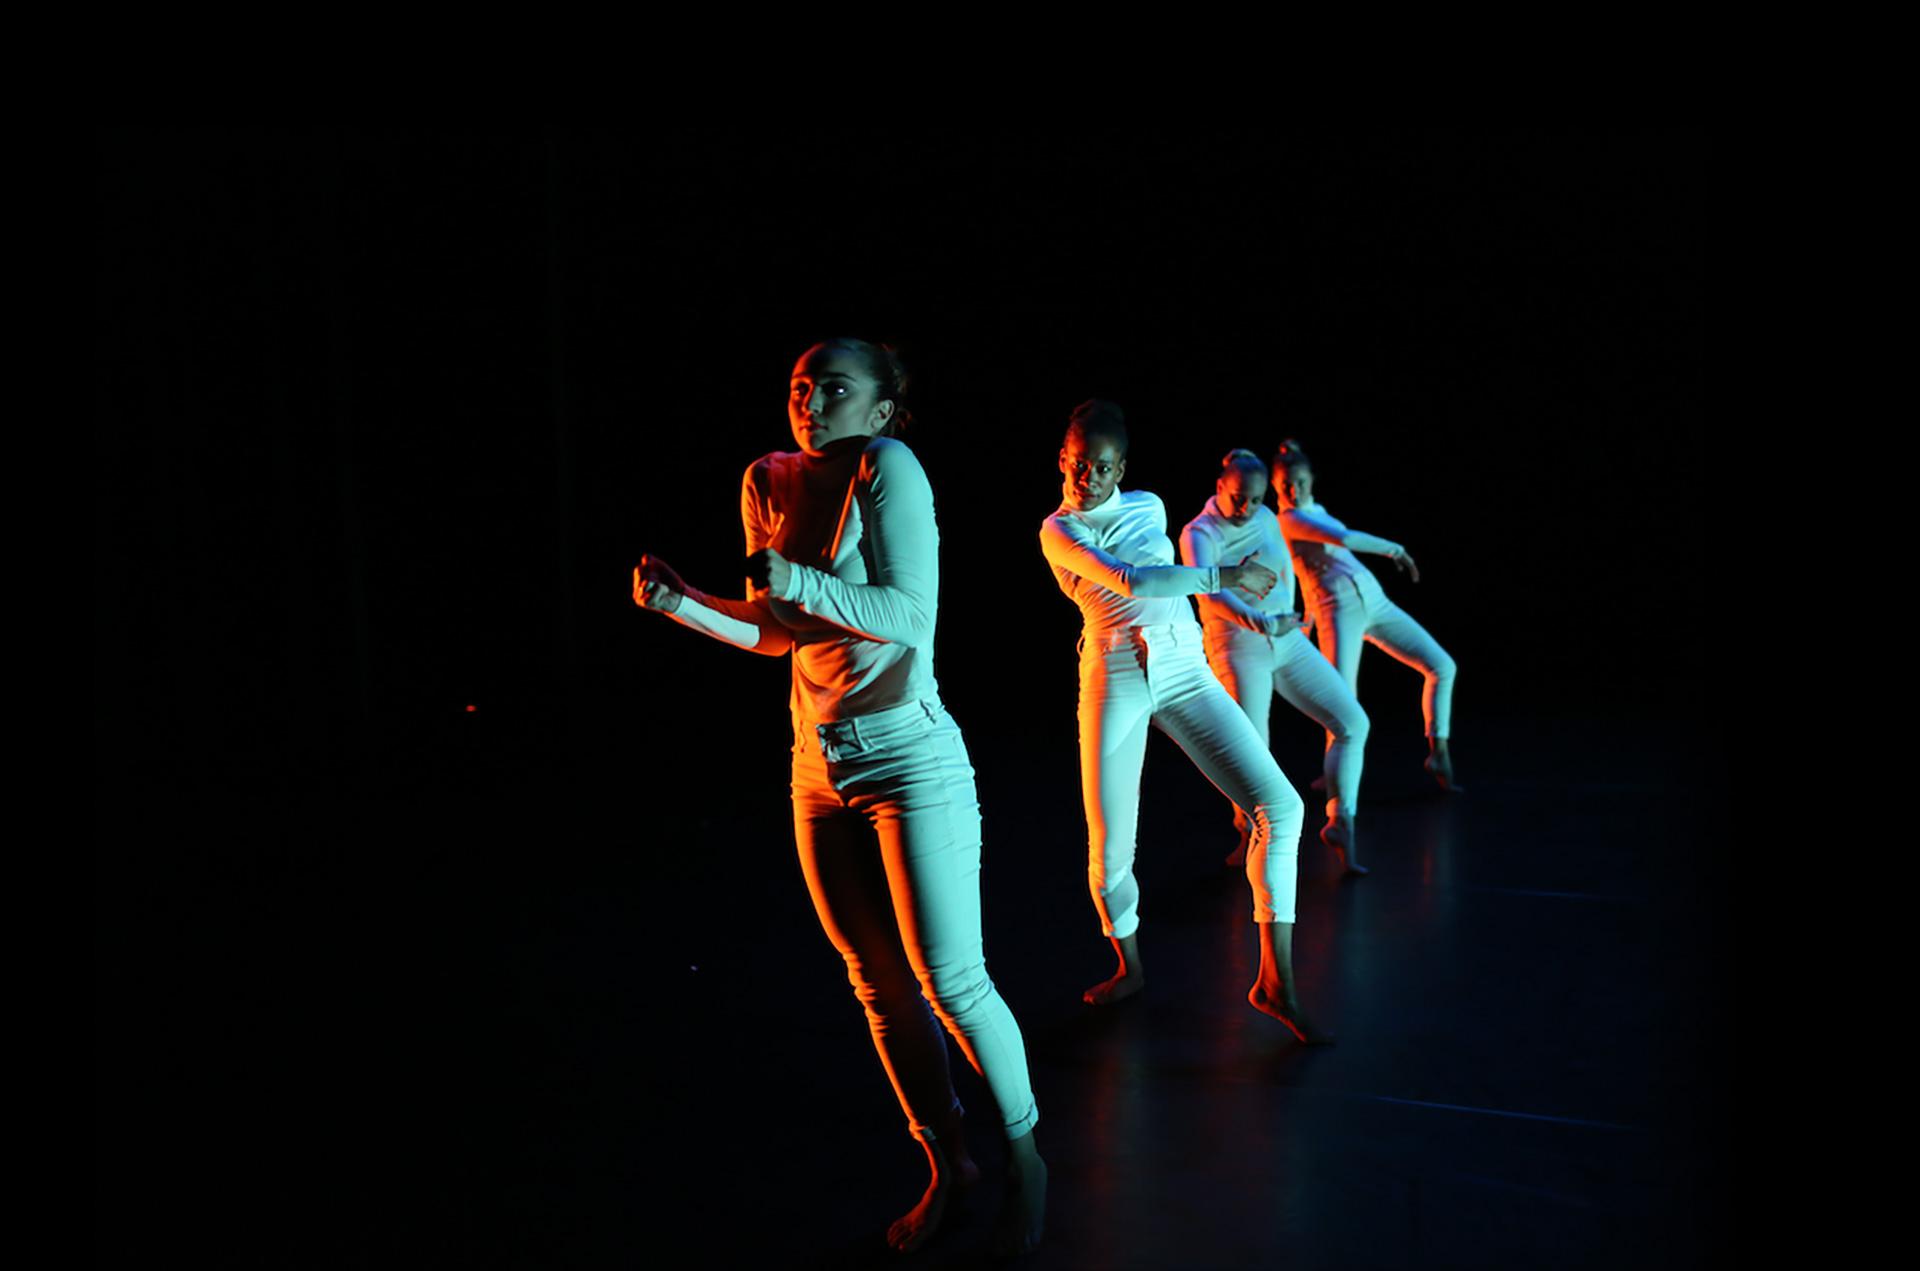 'Kubika' - Choreographed by Oscar Rodriguez, Photo by Anna Bromblin